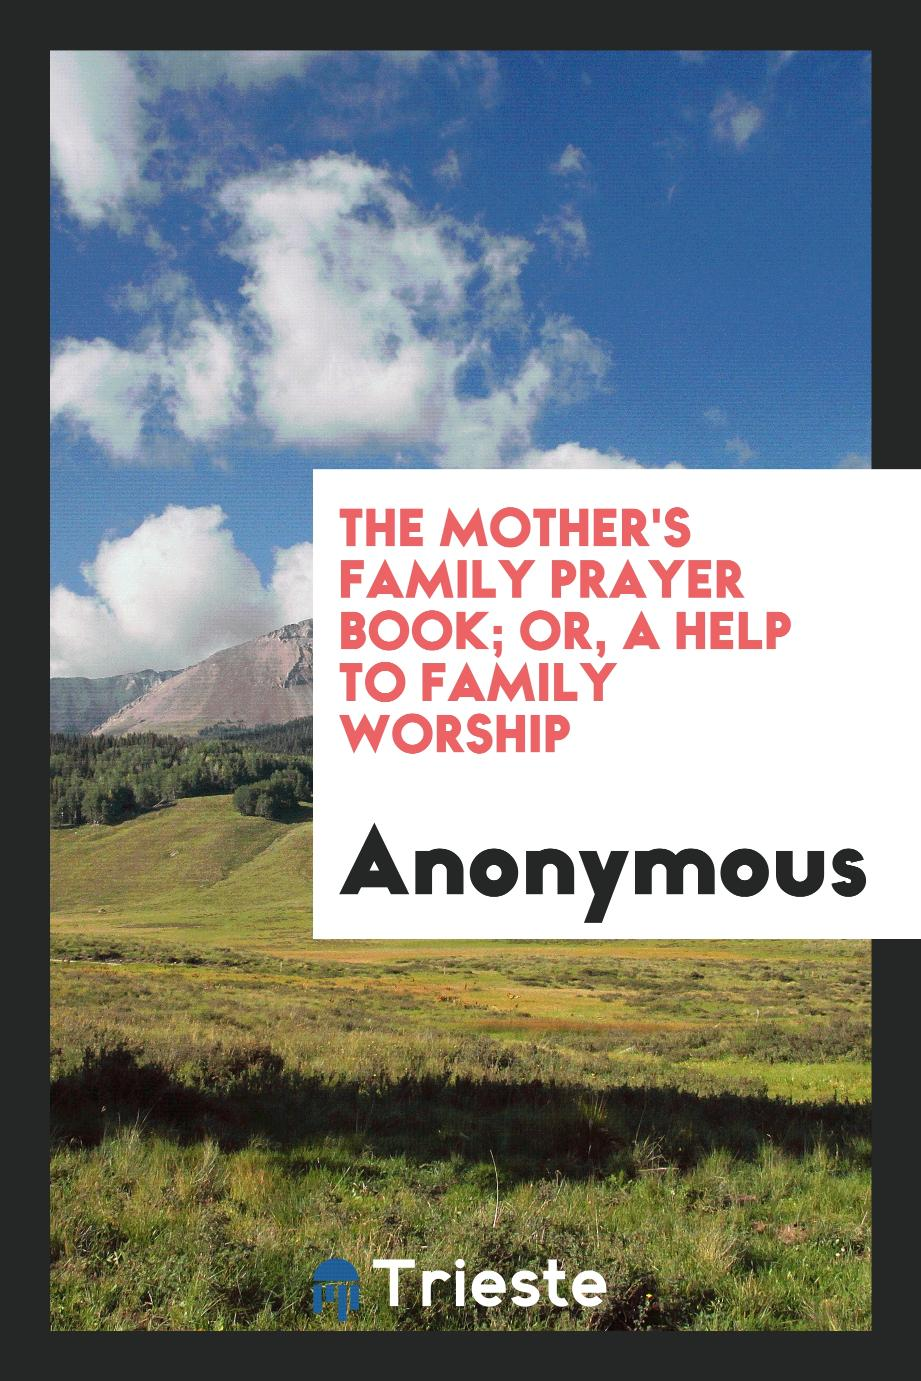 The Mother's Family Prayer Book; Or, a Help to Family Worship